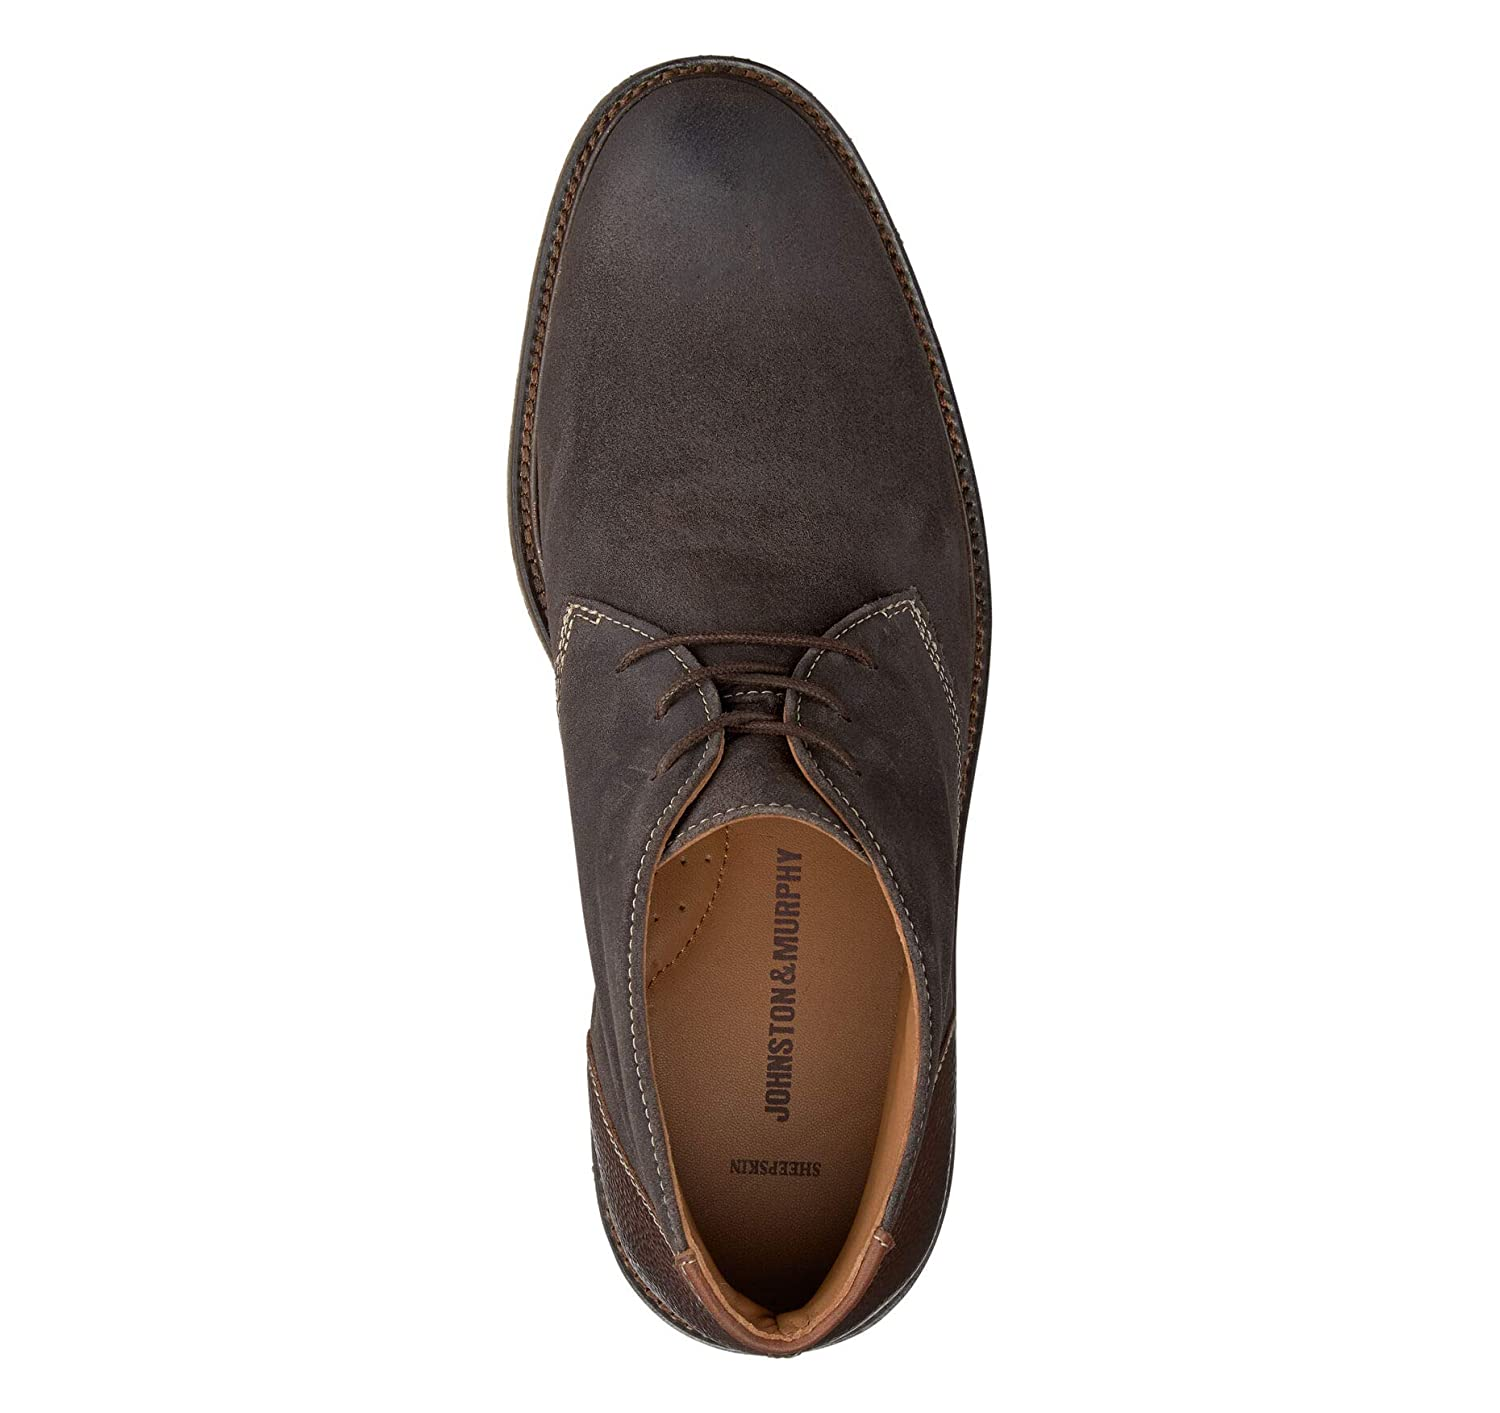 e61f4d5beb2 Johnston & Murphy Men's Copeland Chukka